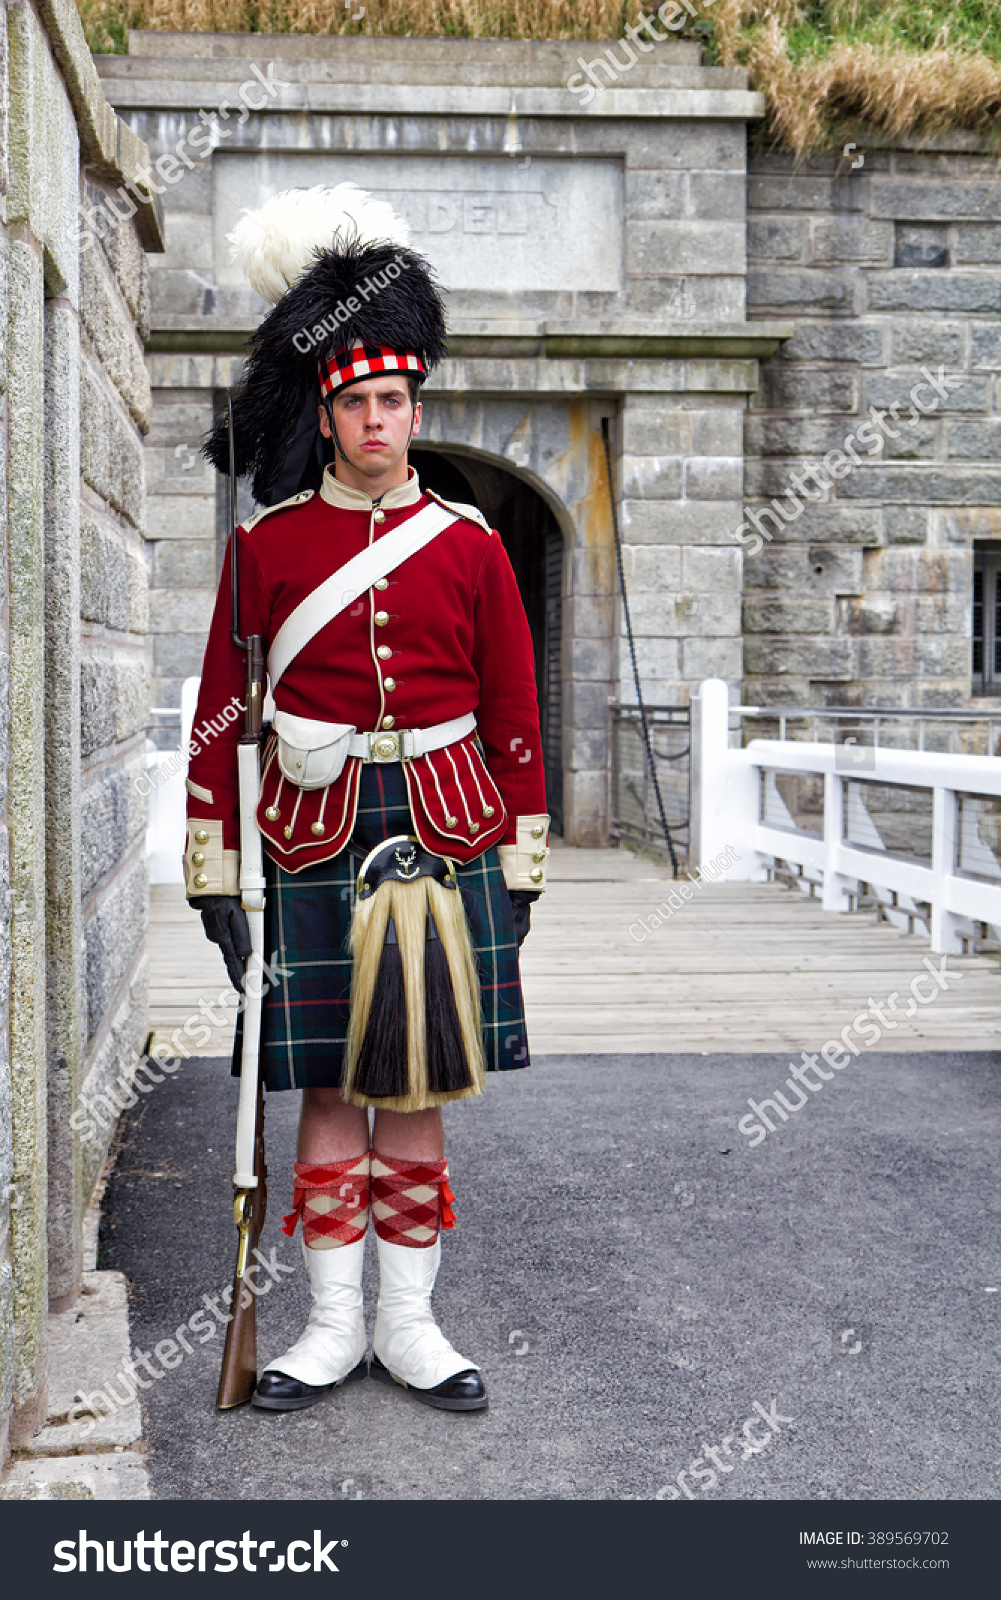 HALIFAX, NOVA SCOTIA, CANADA - SEPTEMBER 19, 2011: A Canadian sentry guards the entrance to the Citadel (Fort George) in Halifax, Canada. This is a National Historic Site and a tourist attraction.